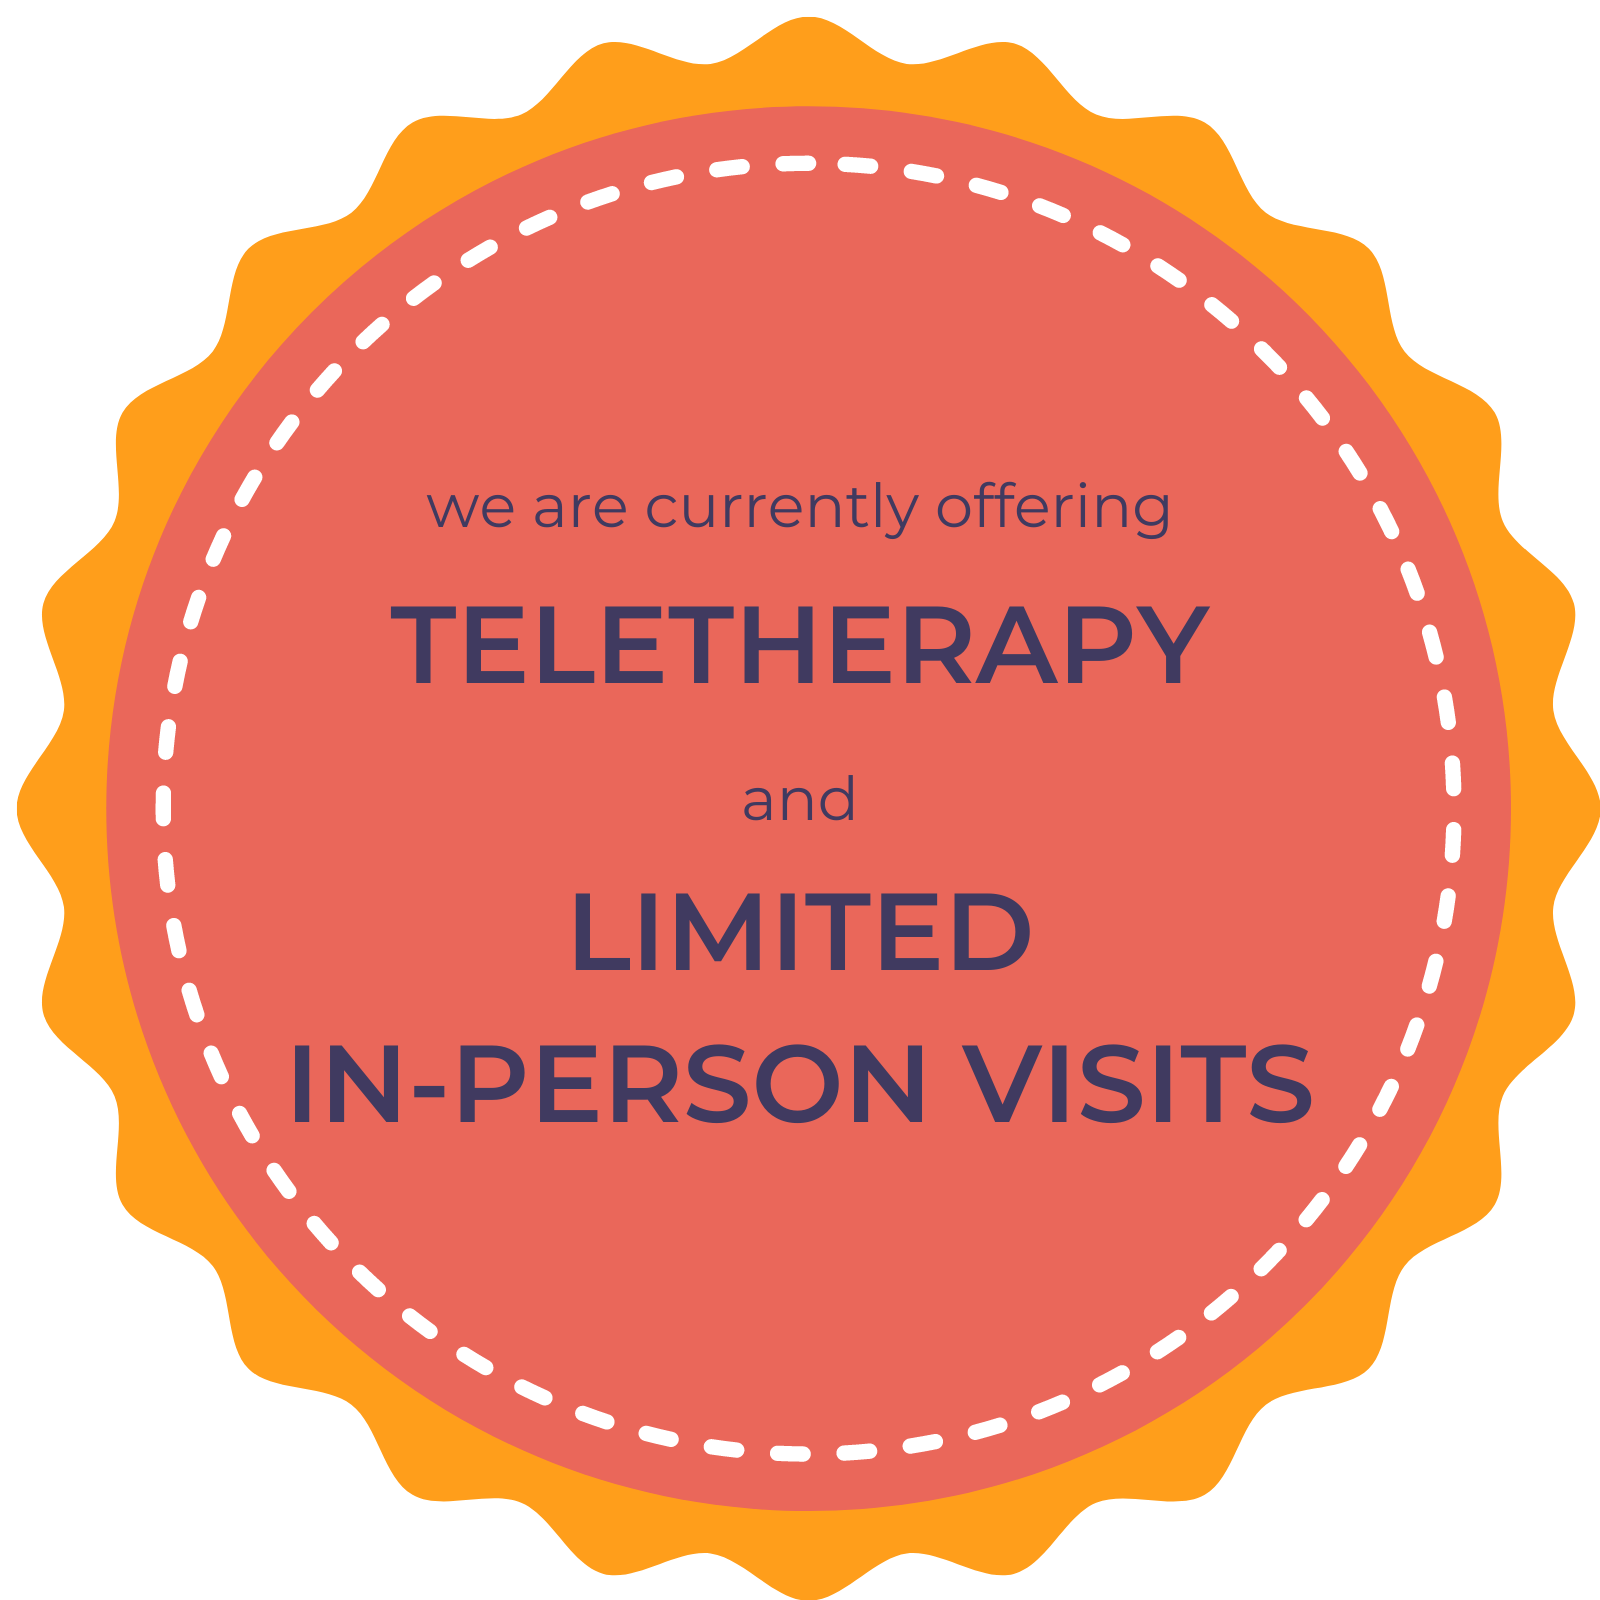 offering teletherapy and limited in-person visits